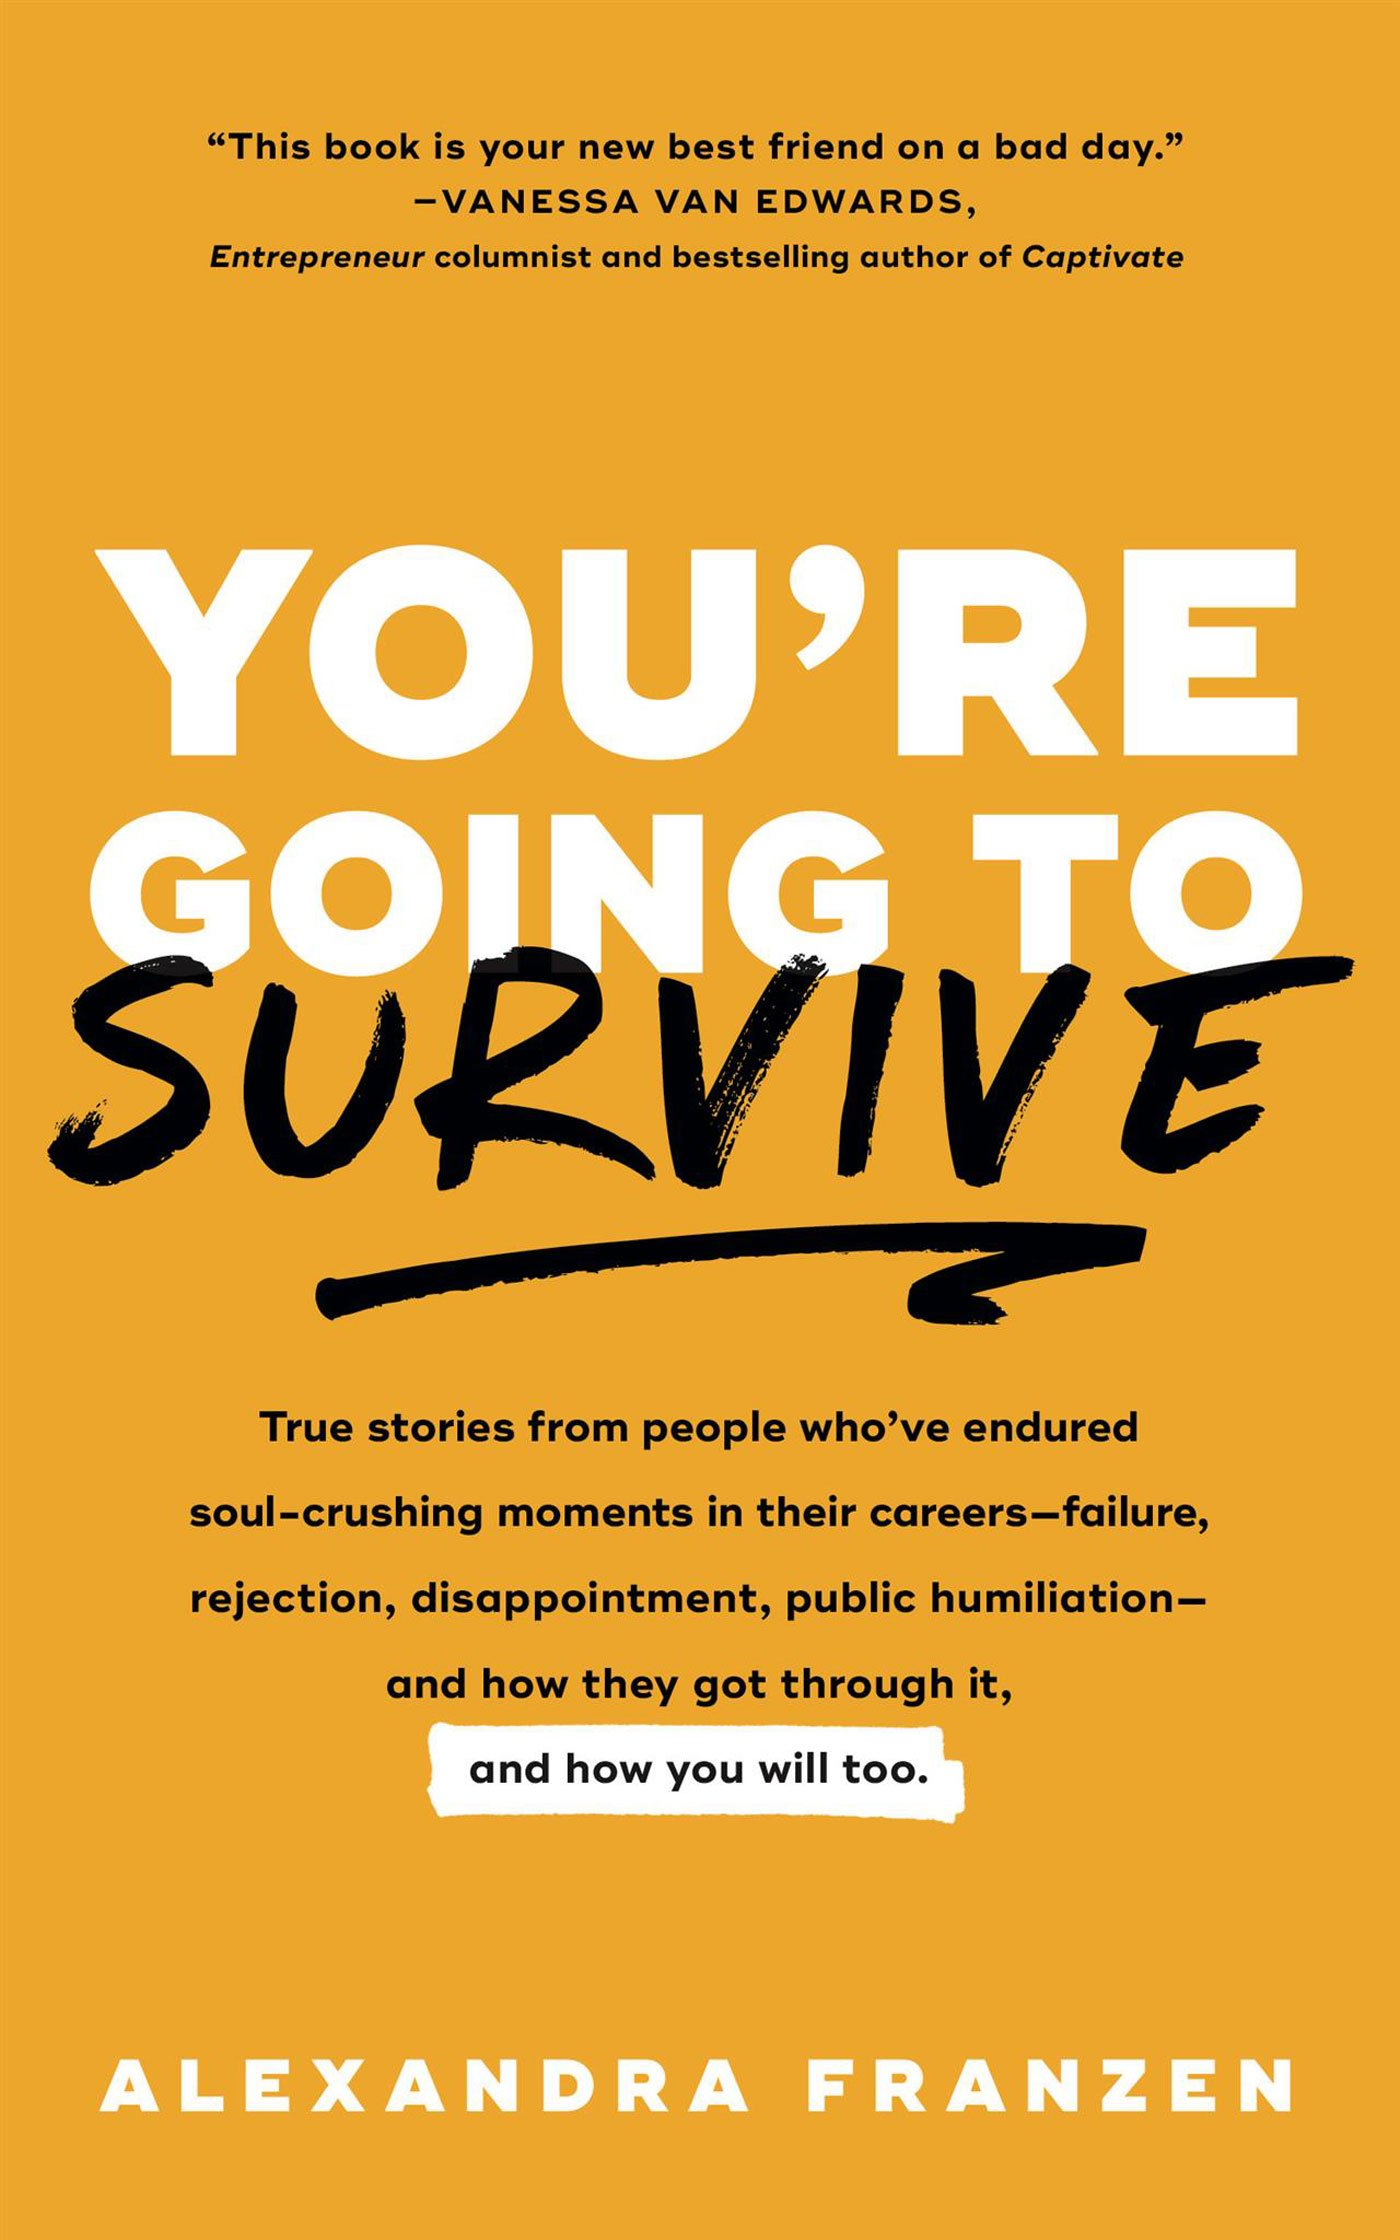 Read Online You're Going to Survive: True stories about adversity, rejection, defeat, terrible bosses, online trolls, 1-star Yelp reviews, and other soul-crushing experiences―and how to get through it ebook